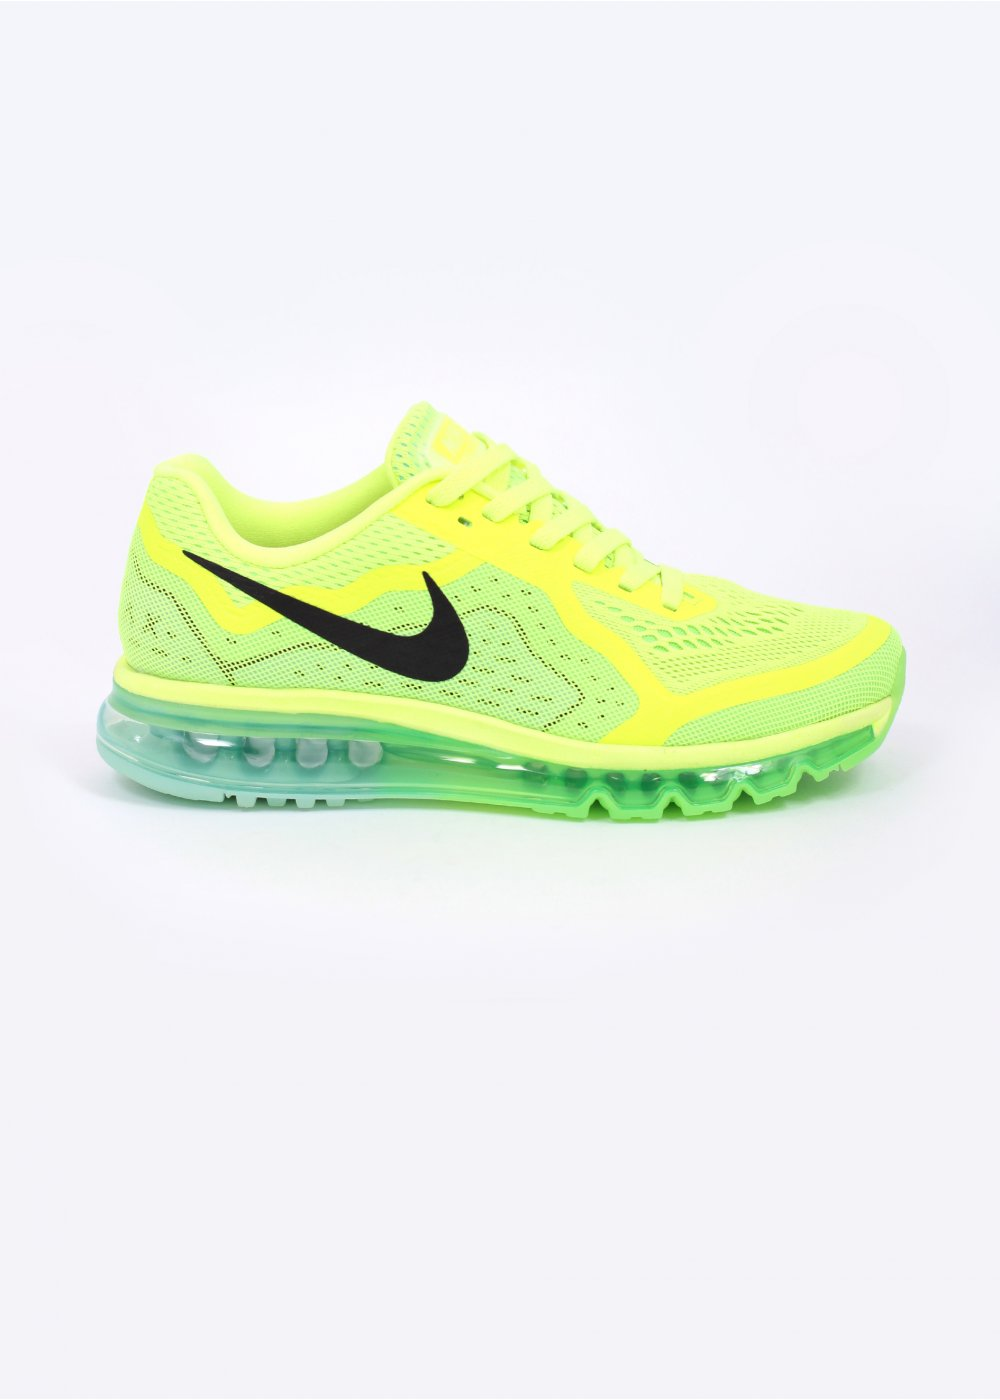 Find great deals on eBay for nike shoes neon green. Shop with confidence.